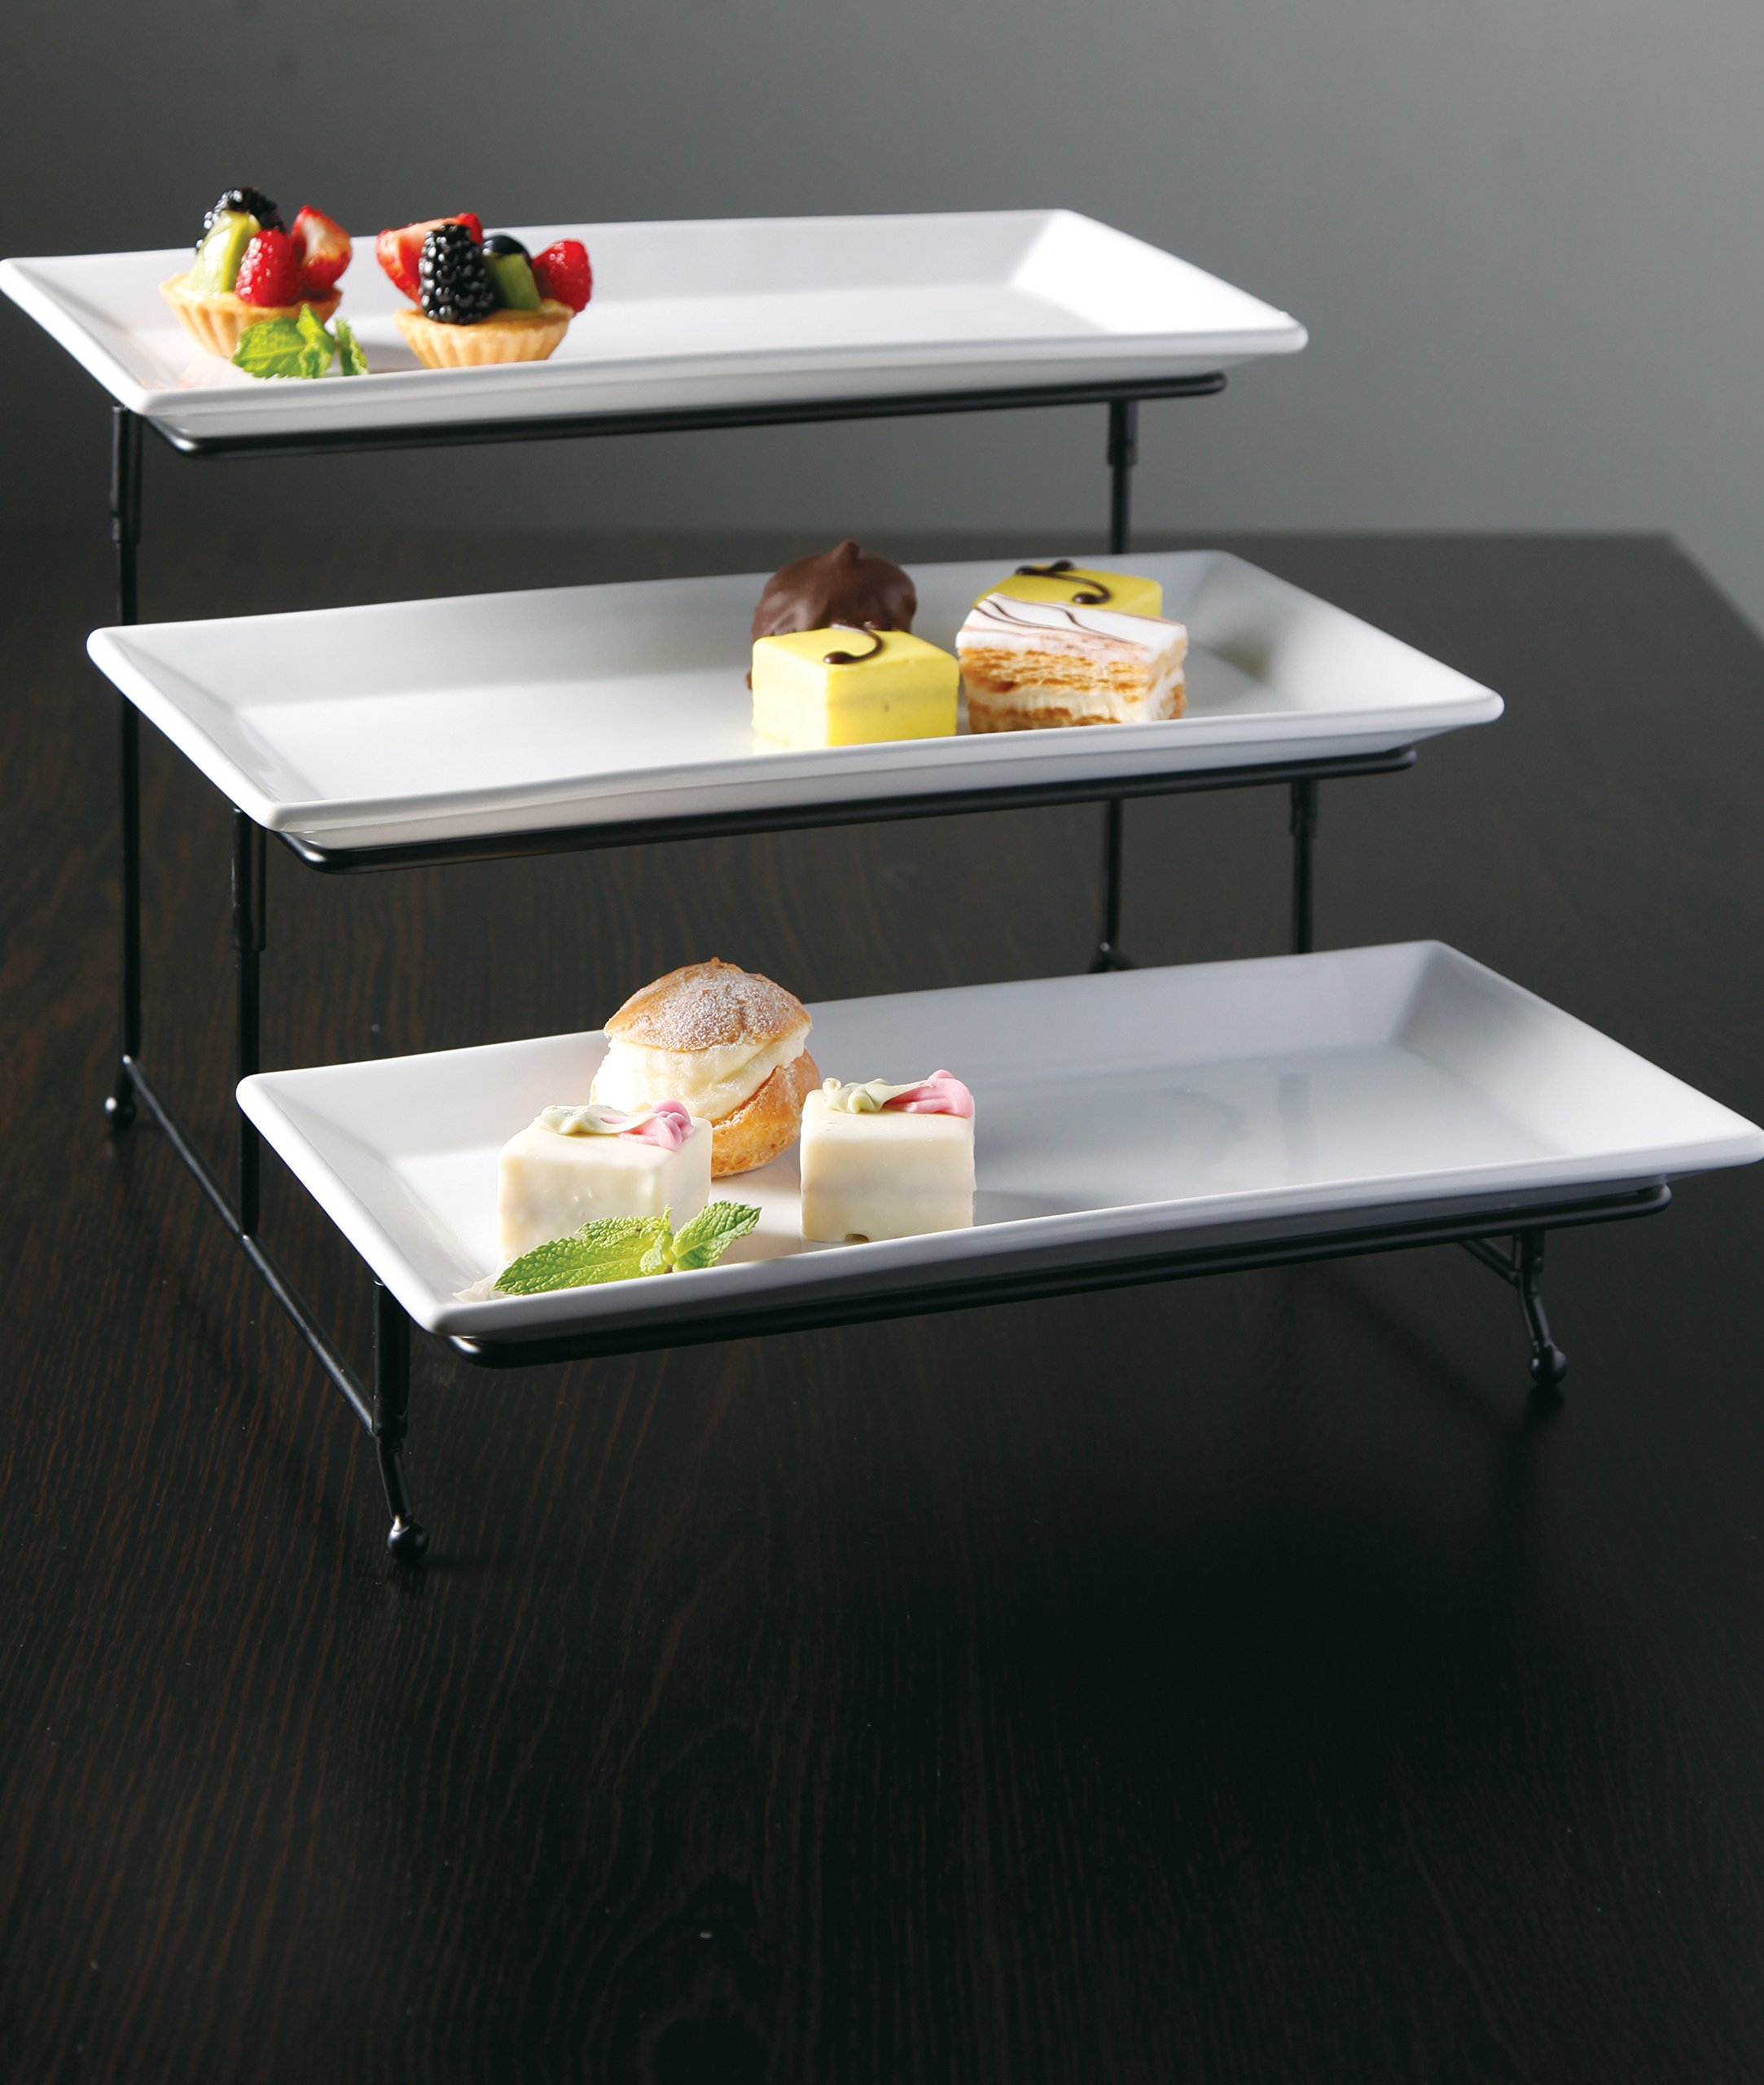 Gibson Elite 102157.04RM Gracious Dining Three Tier Rectangle Plate Set Ware with Metal Stand, White